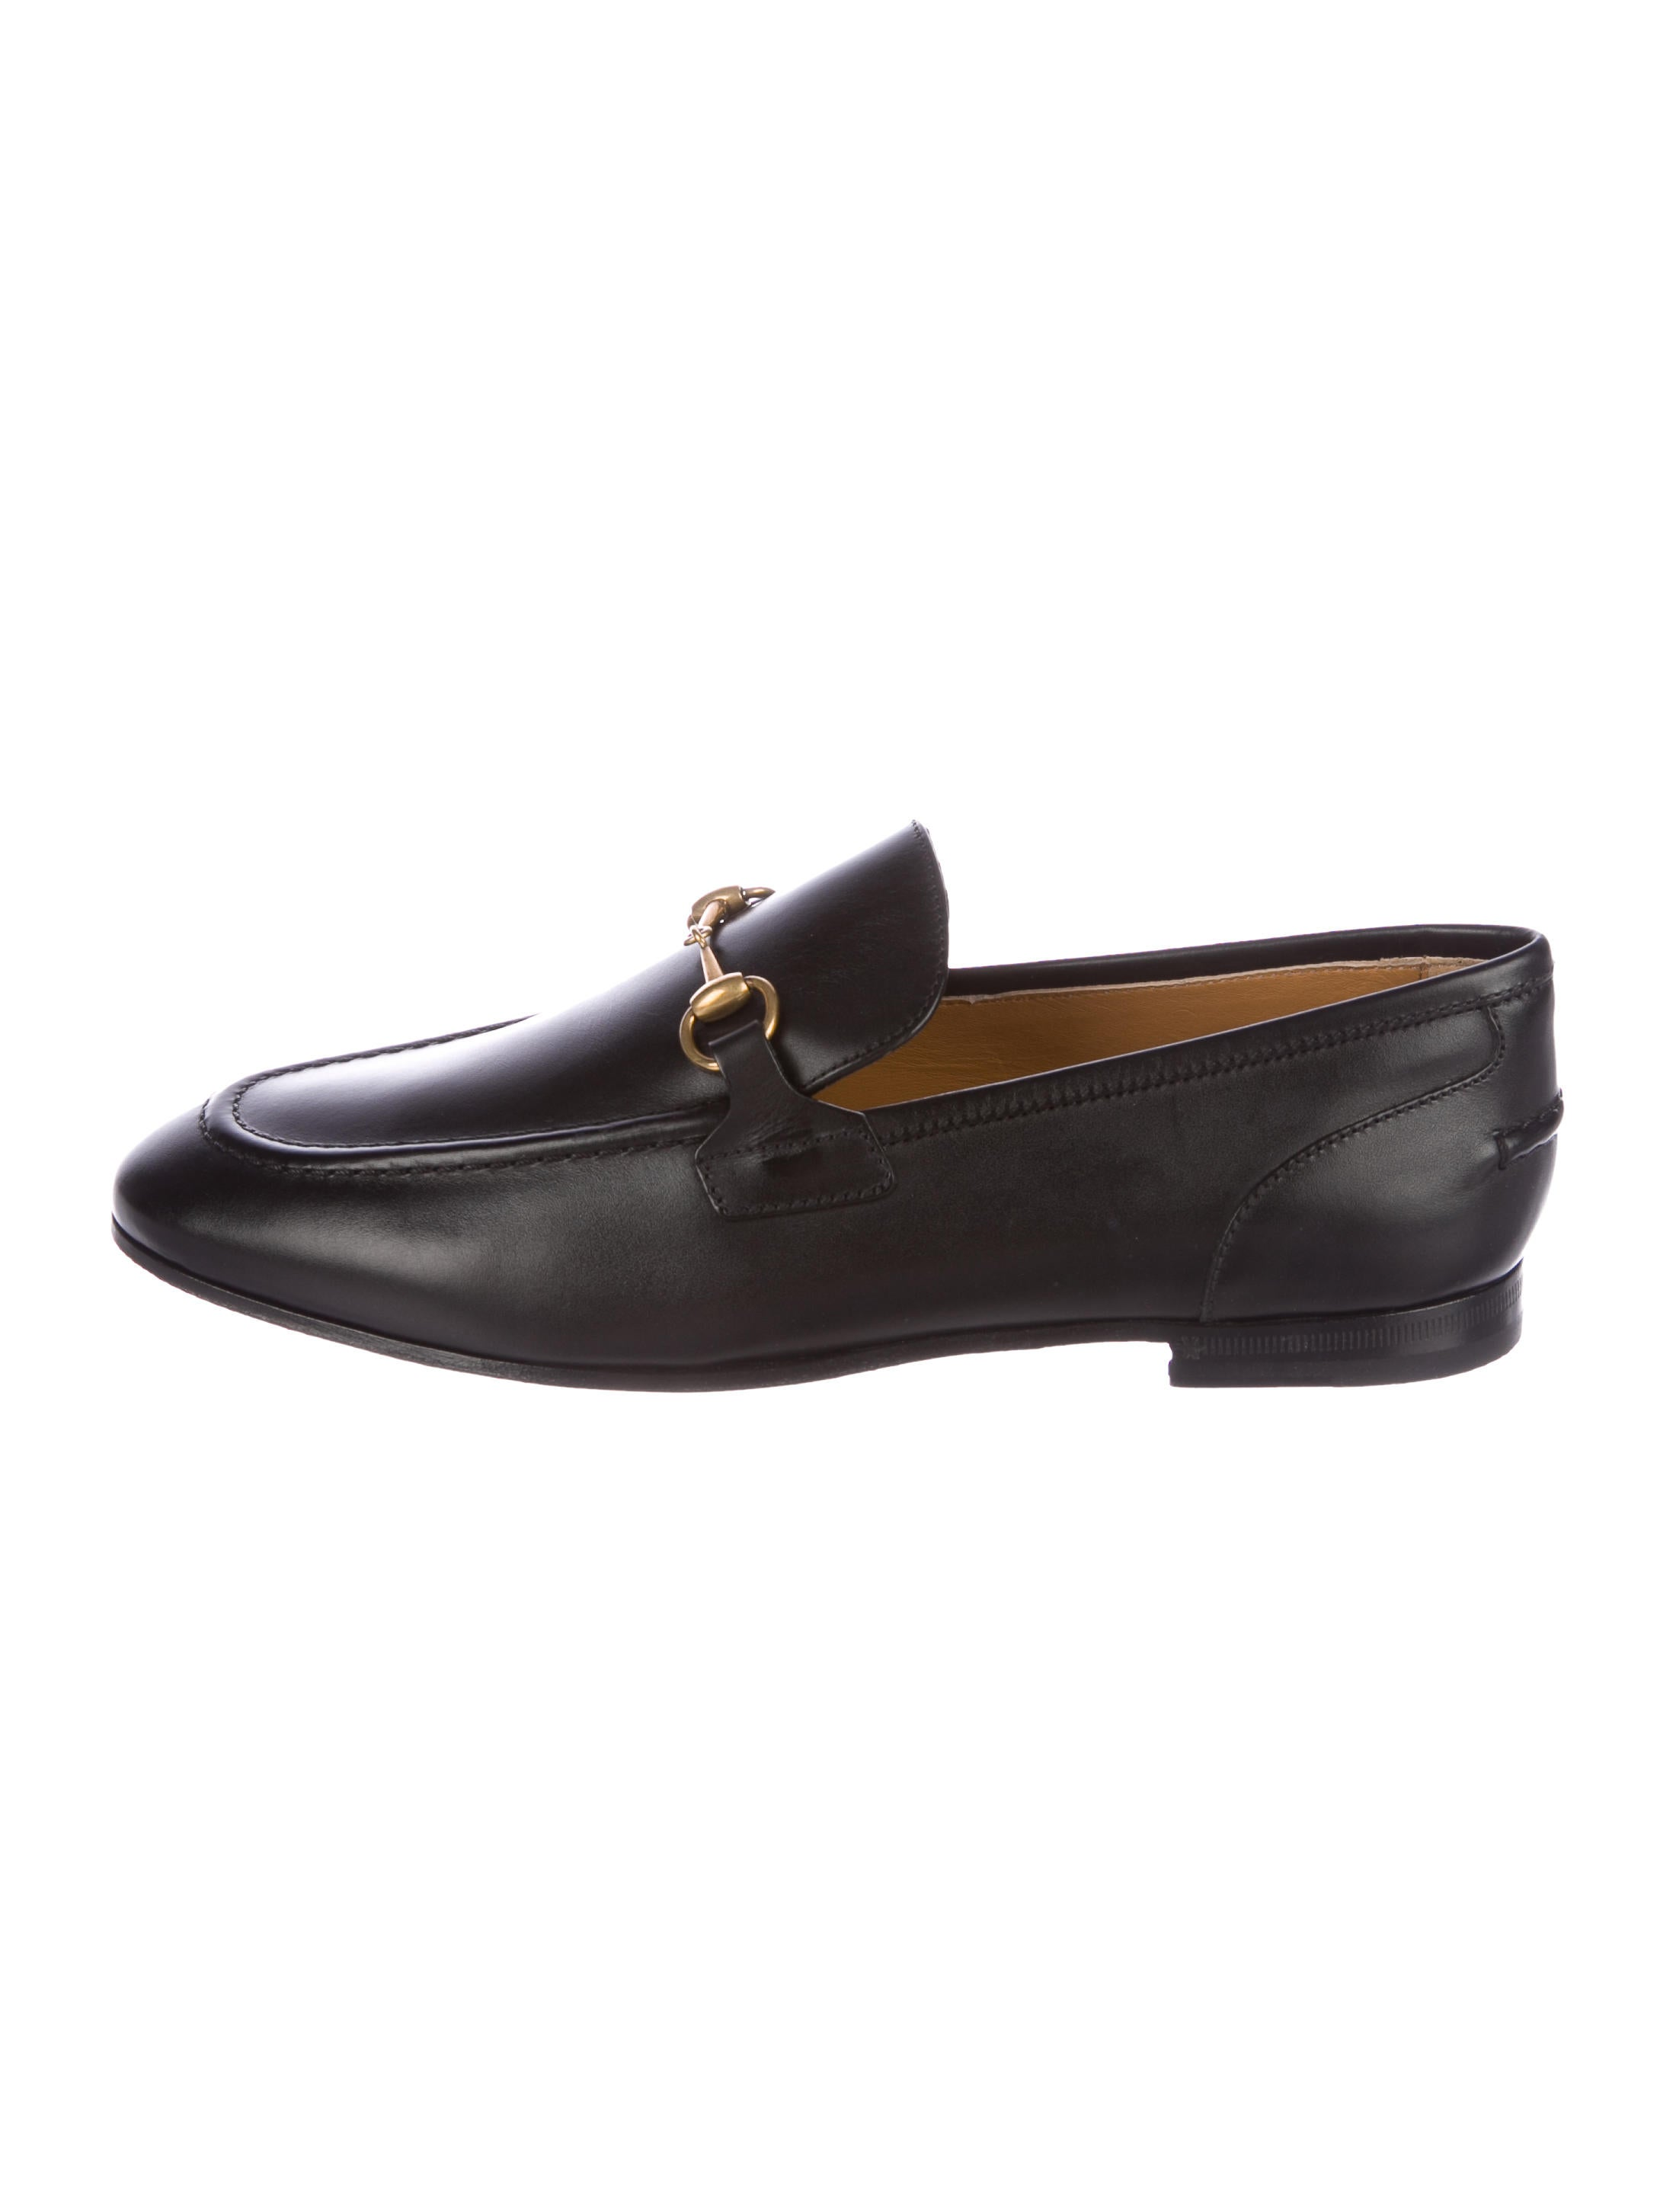 8de784d8db20 Gucci Betis Glamour Loafers - Shoes - GUC191108